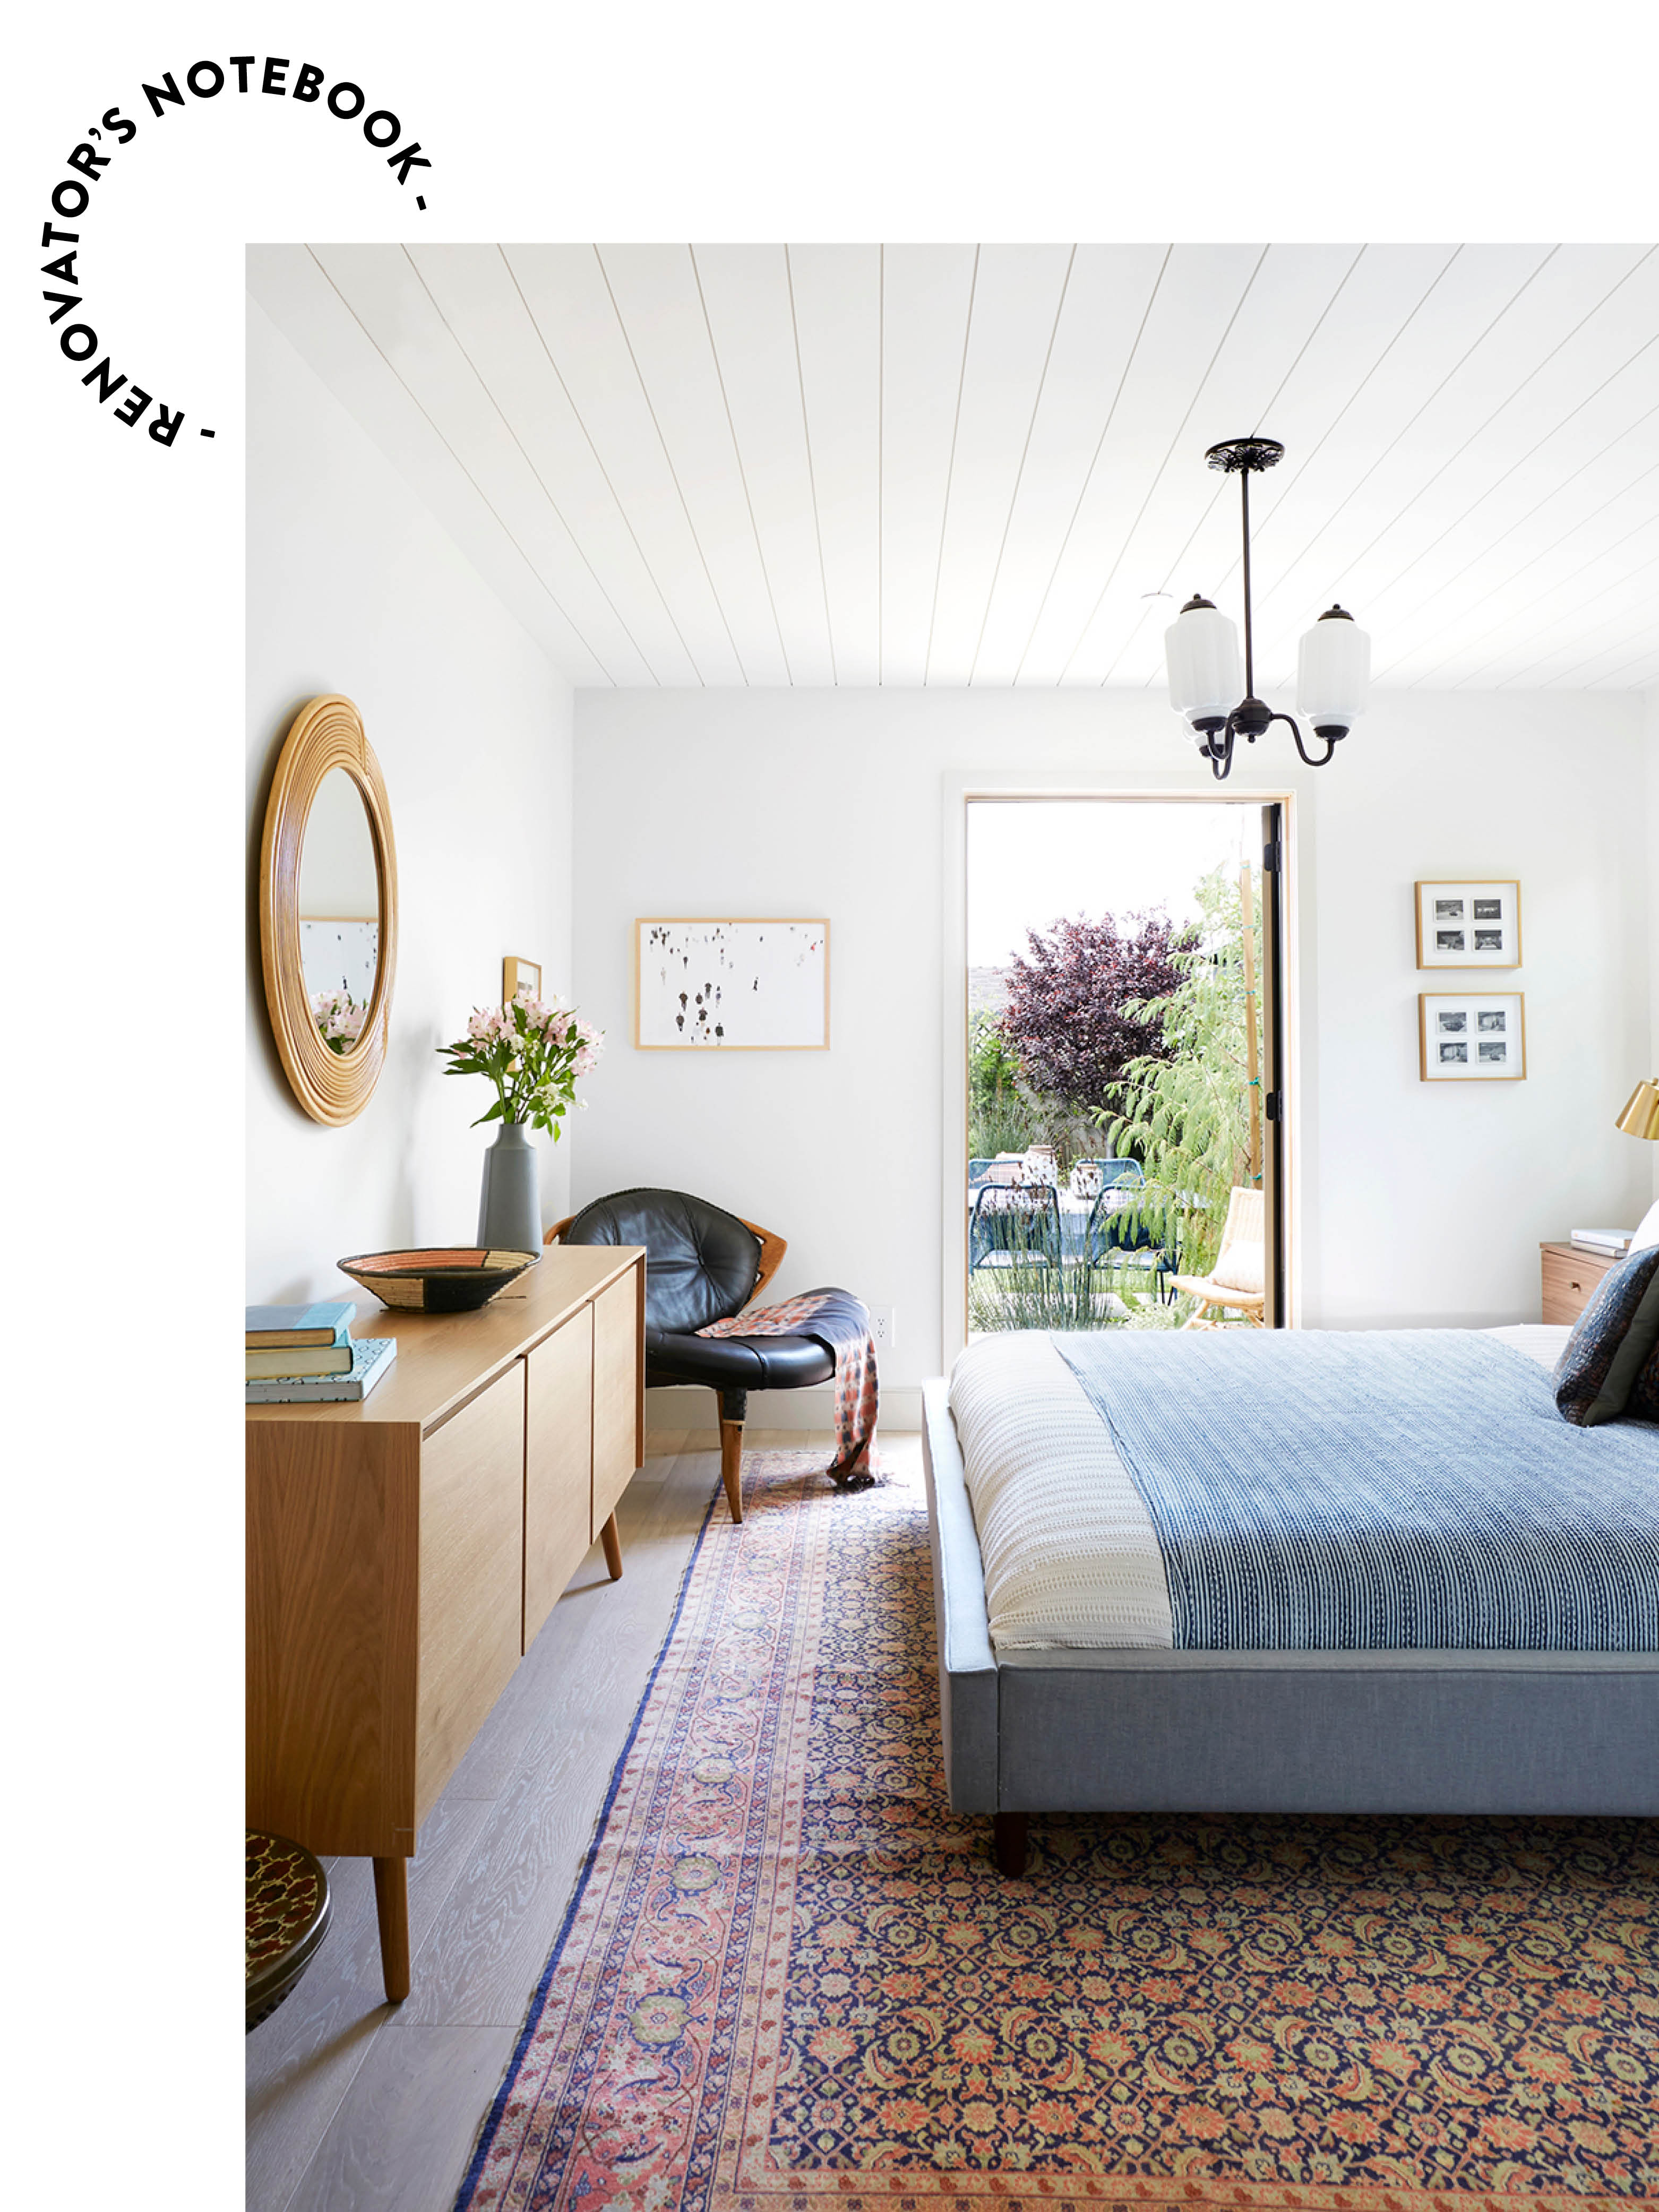 Bedroom with white walls and blue bed